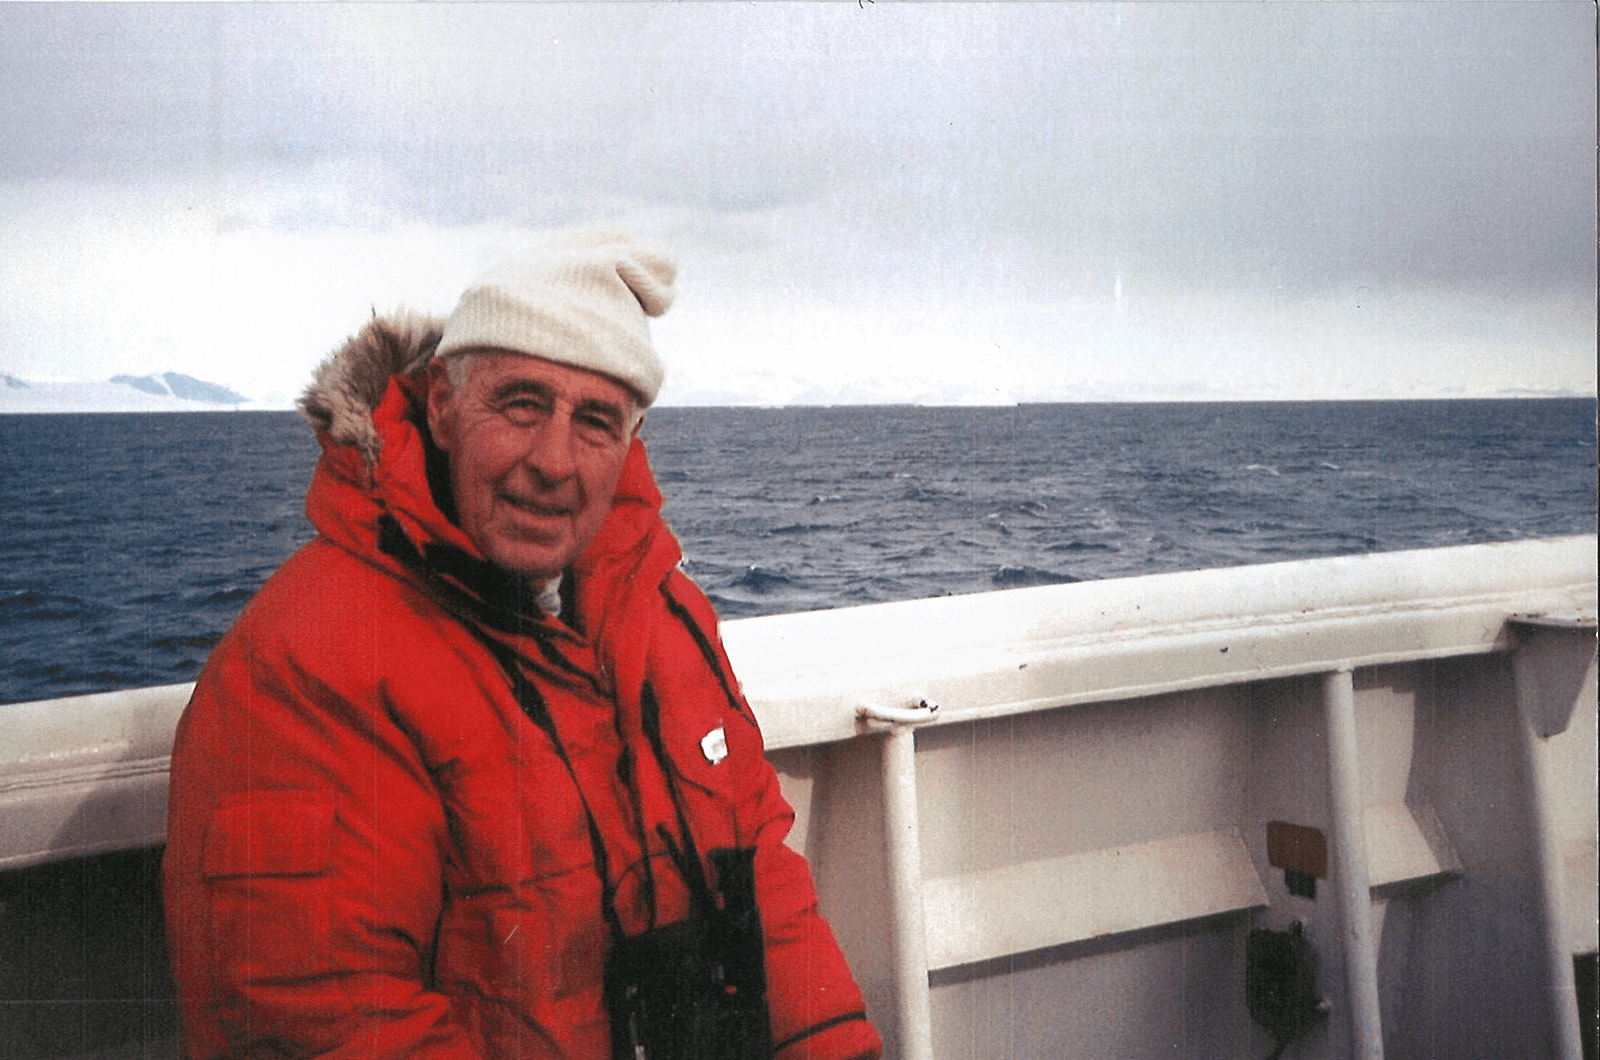 Toastmaster John Donnellon was employed as a boiler technician and maintenance specialist stationed at McMurdo Station in Antarctica for three summers. There he joined the only Toastmasters club—Club 549, which had 20 to 25 members who came from all over the world.